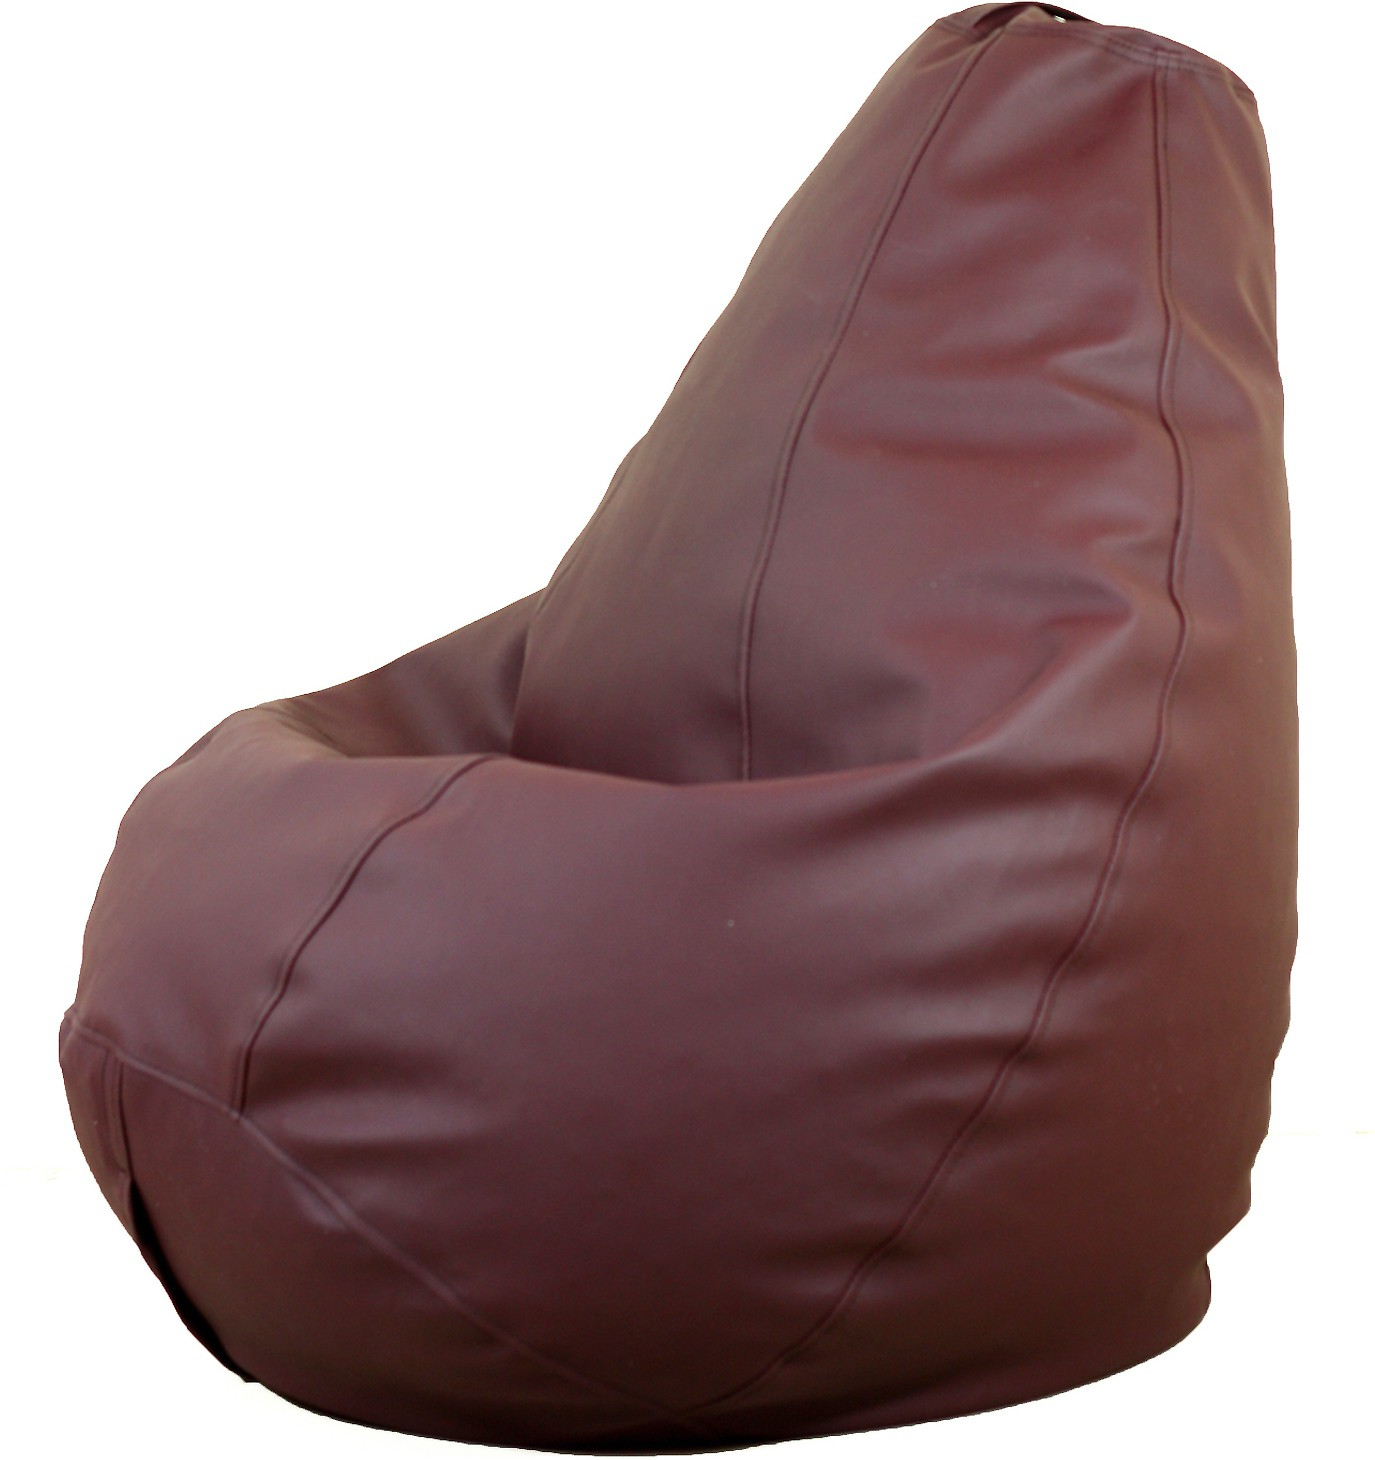 View Gabbroo Medium Bean Bag Cover(Brown) Furniture (Gabbroo)